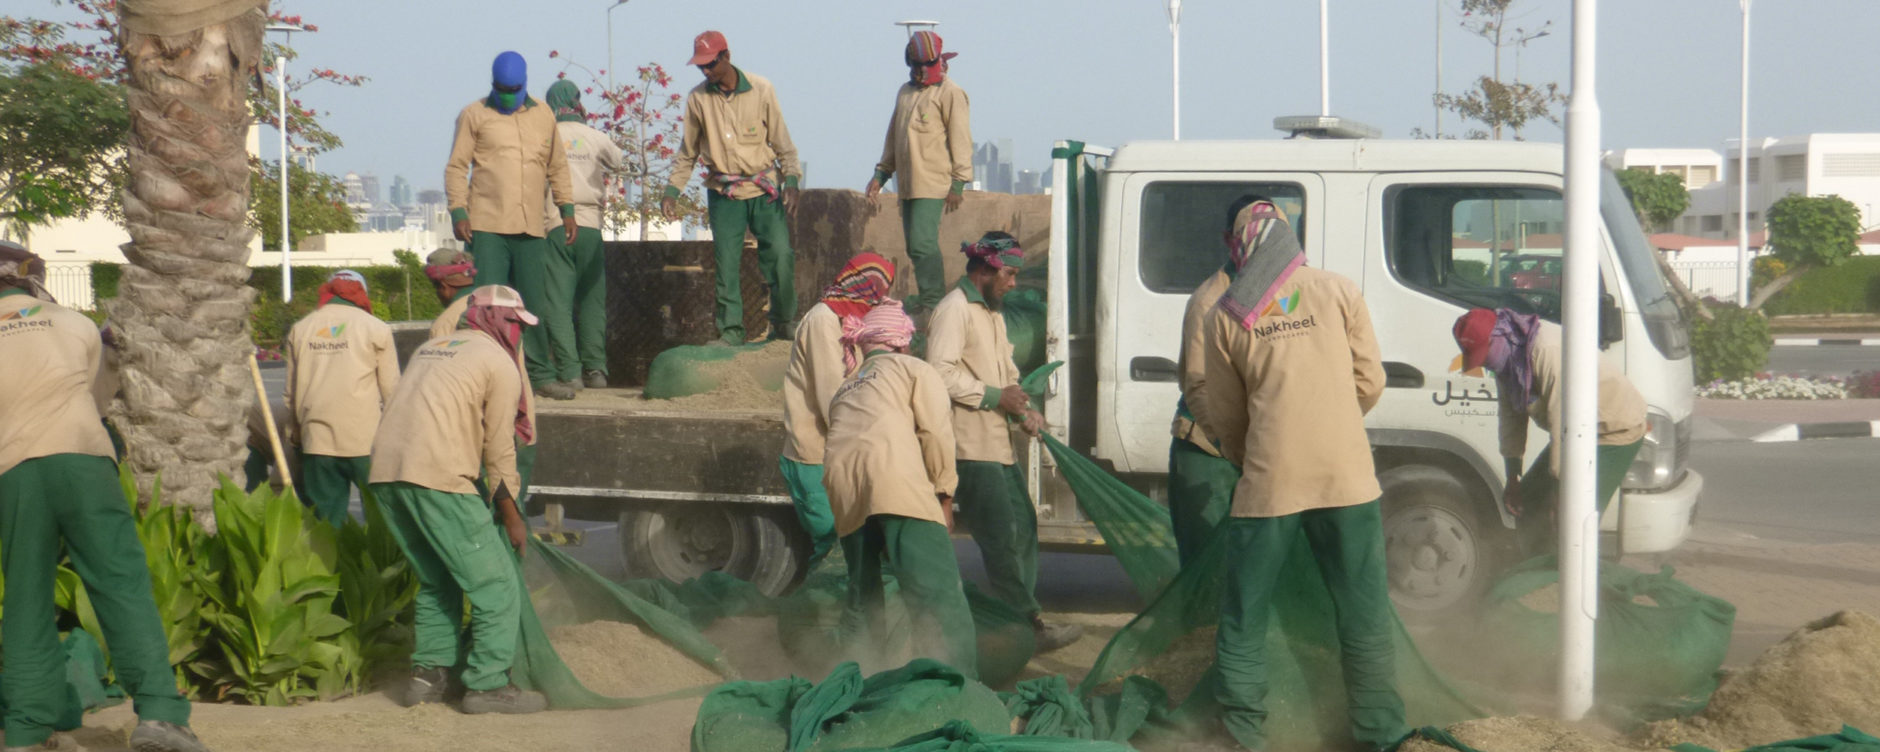 Doha landscaping crew collecting and taking grass clippings to be landfilled, protecting their lungs from the particulates with scarves. Photo © Nance Klehm.